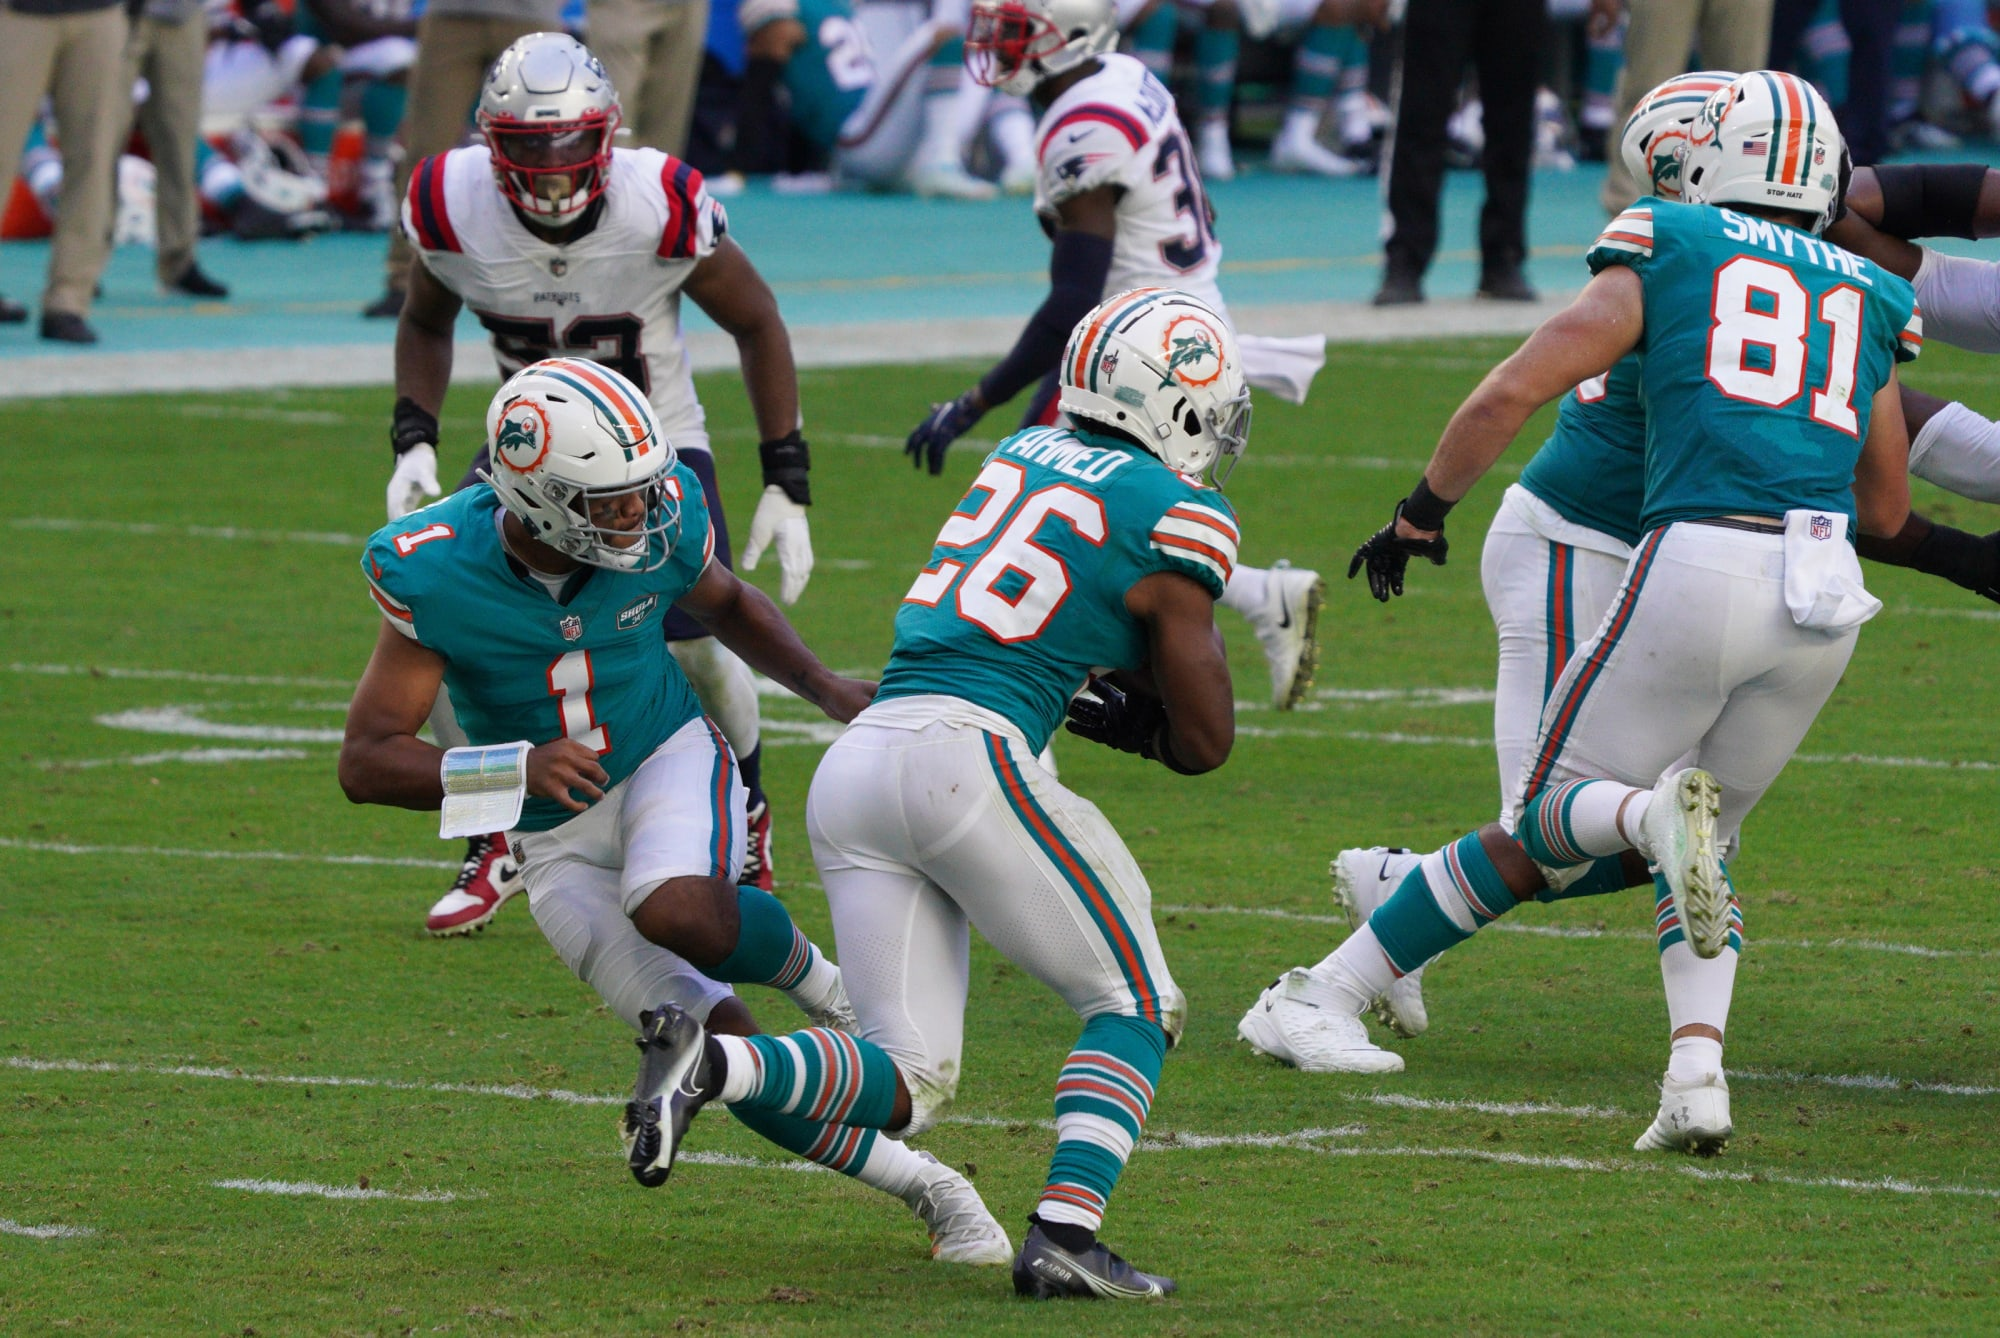 Time for the Miami Dolphins to stock up on offensive weapons